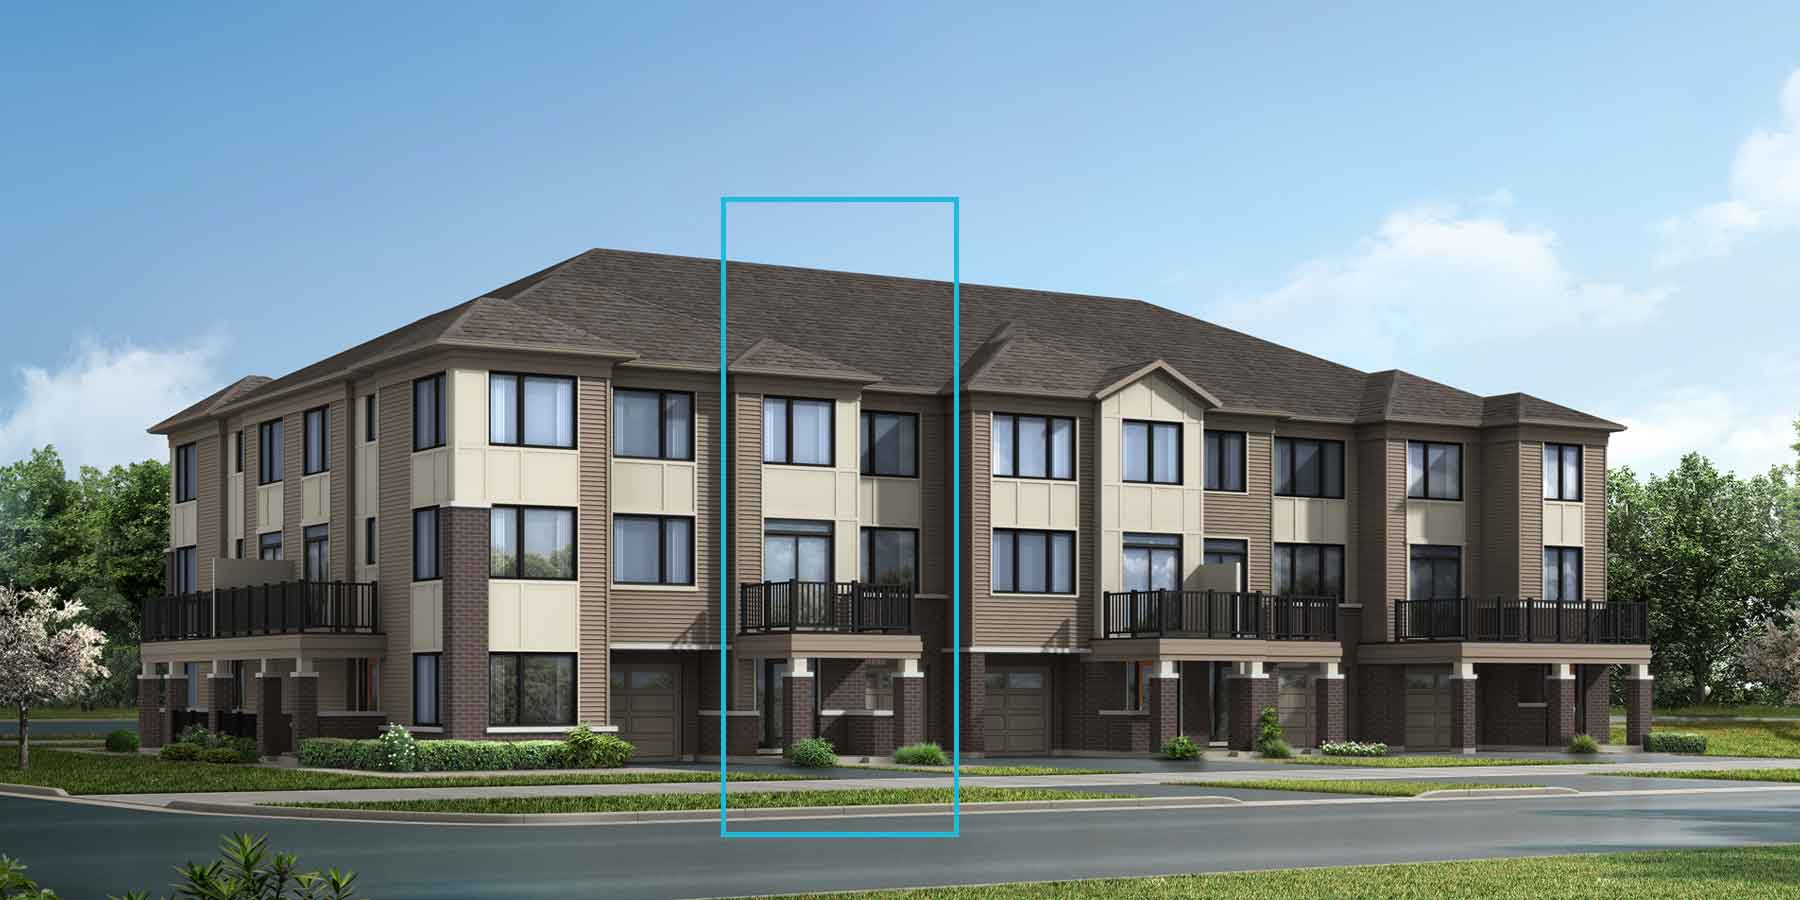 Gemstone Plan TownHomes at Promenade in Barrhaven Ontario by Mattamy Homes